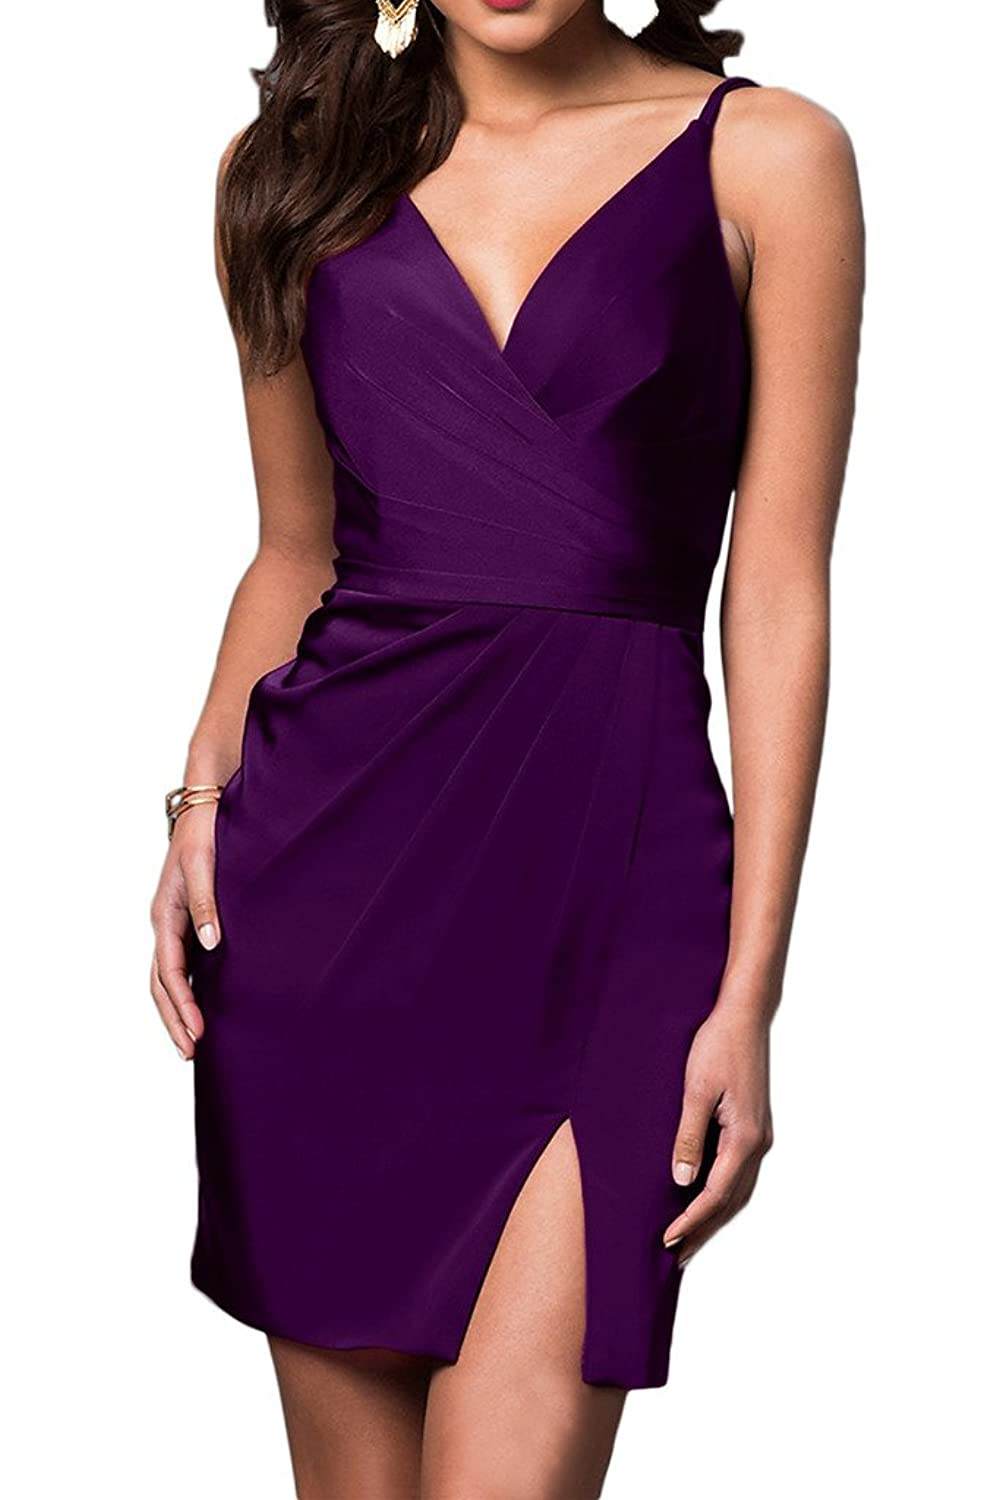 Gorgeous Bride Short Sheath V-neck Cocktail Prom Homecoming Party Dresses